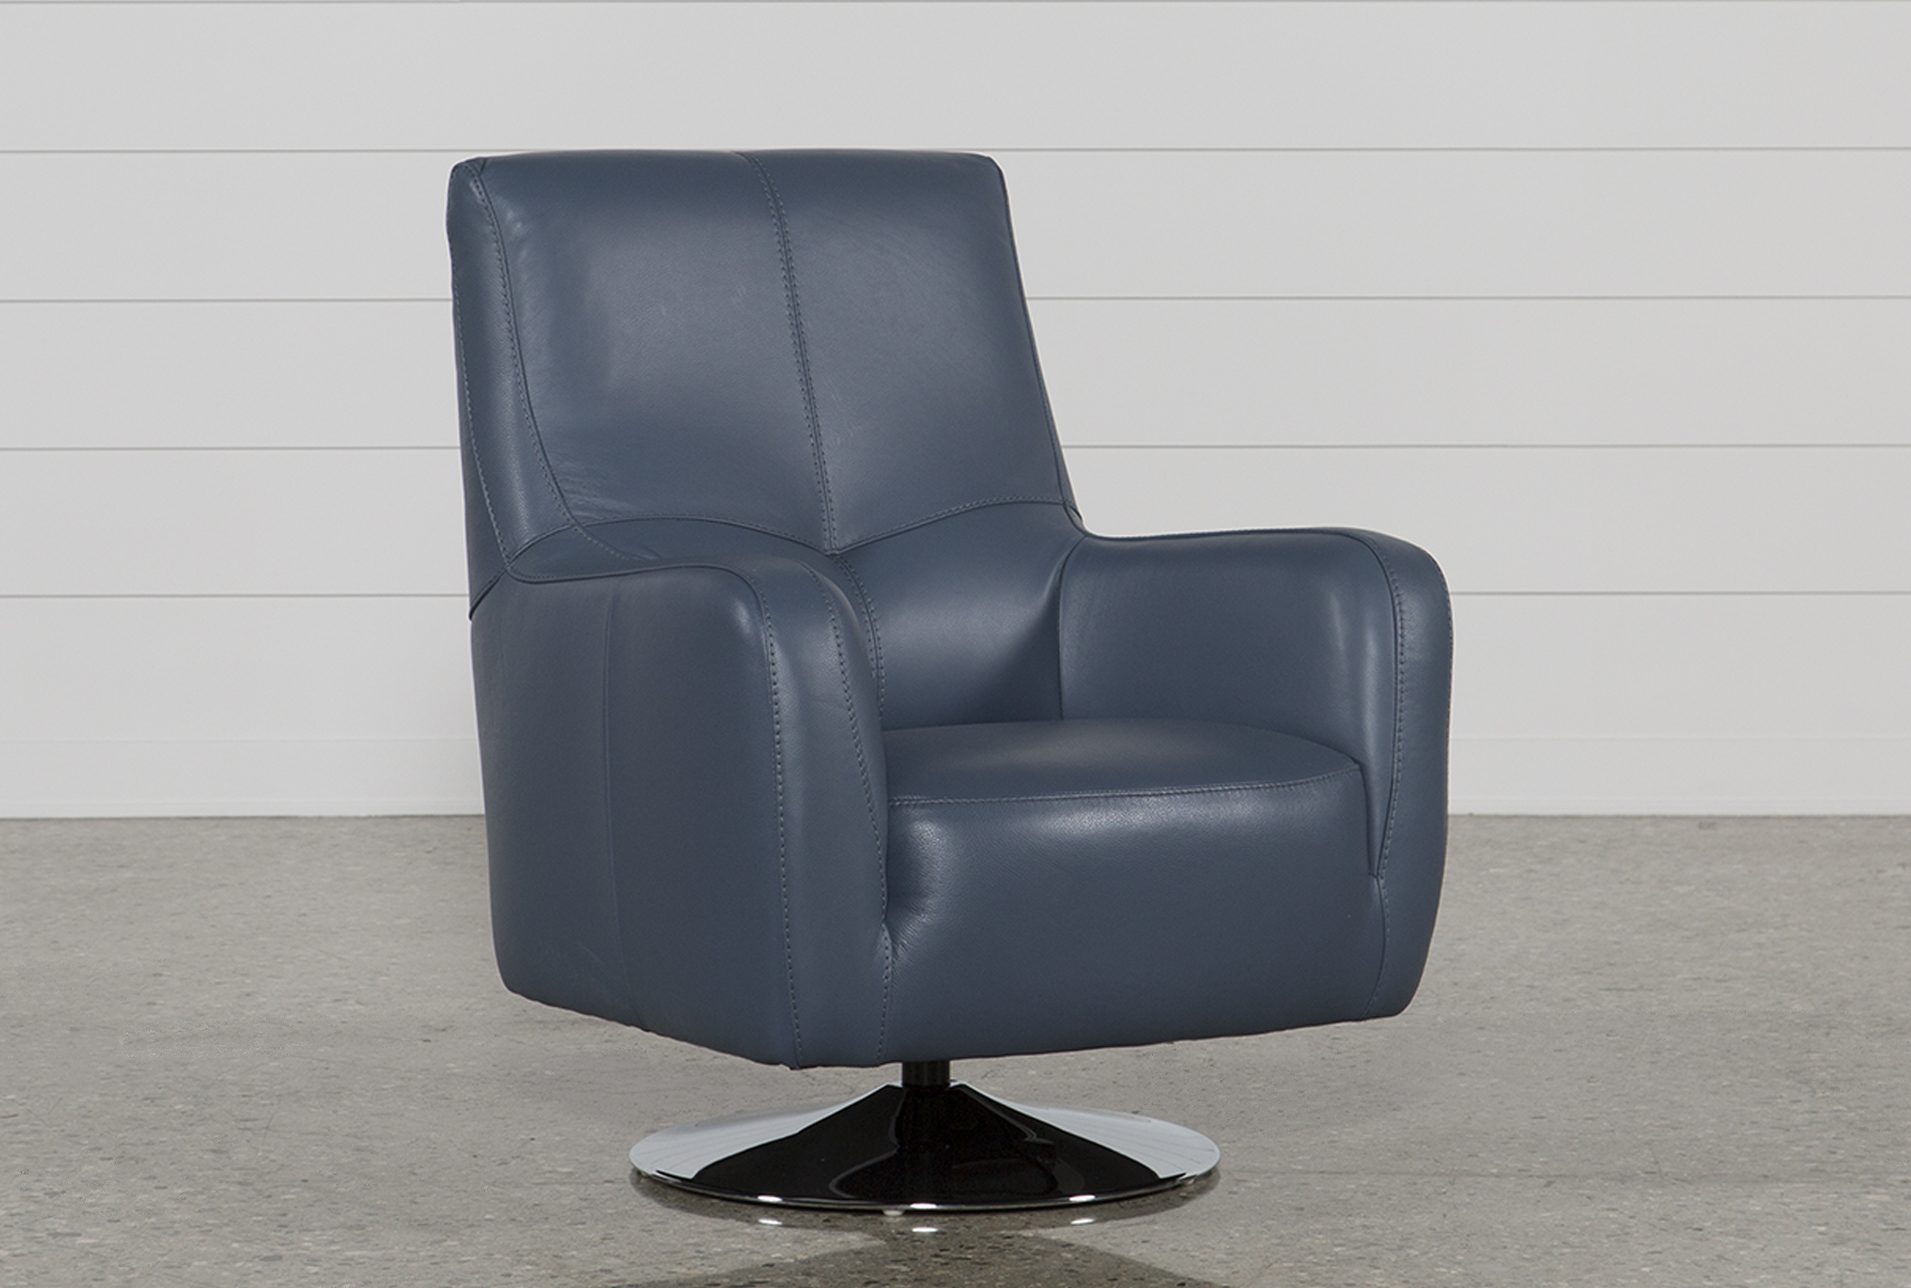 Kawai Leather Swivel Chair (Qty: 1) Has Been Successfully Added To Your  Cart.